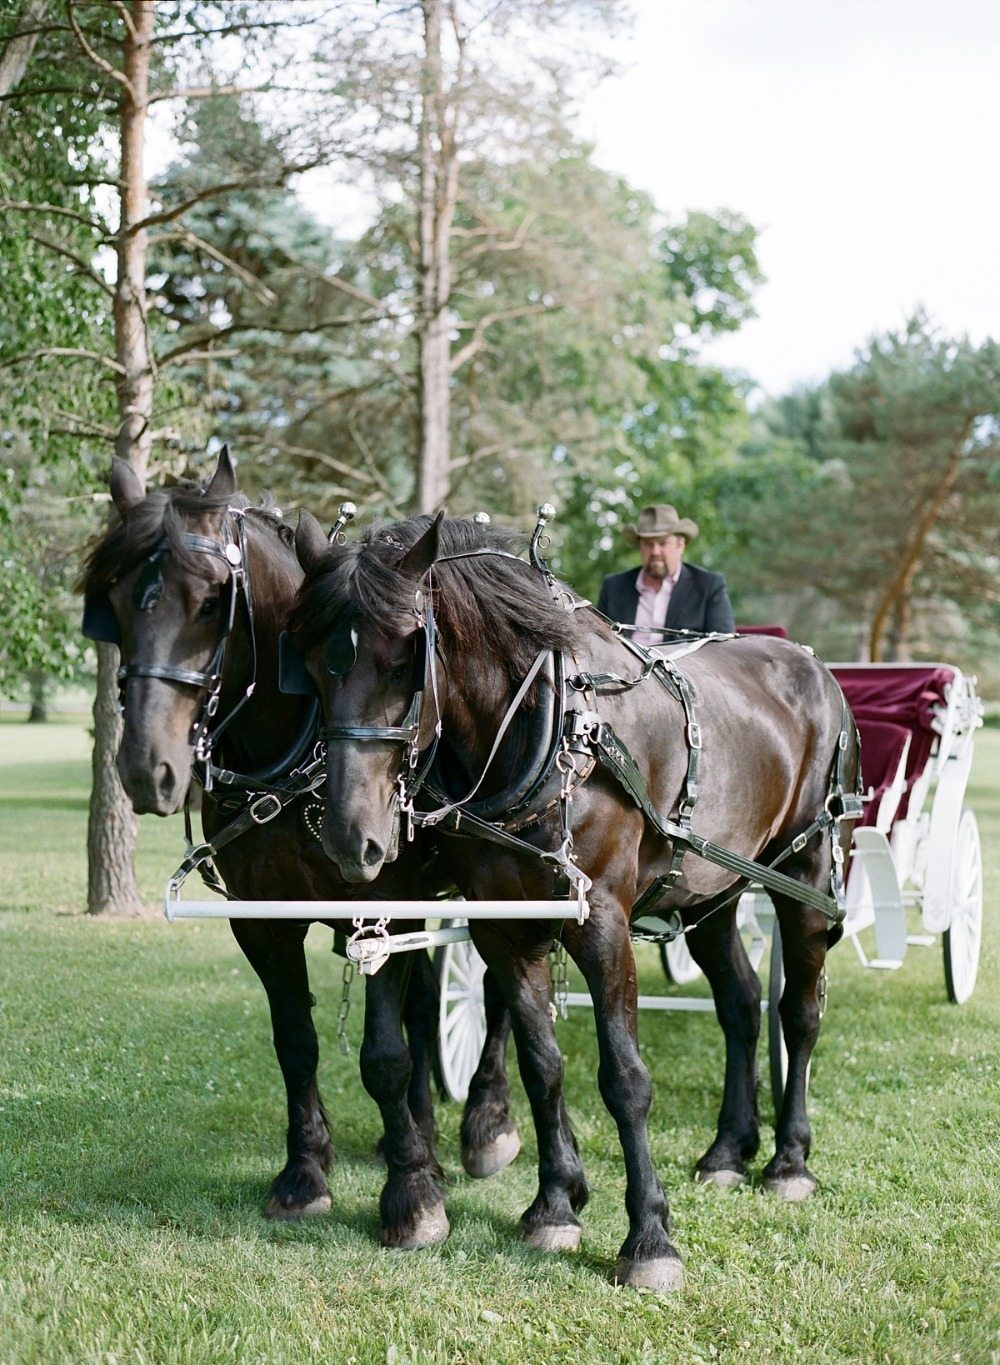 Wedding carriage transportation